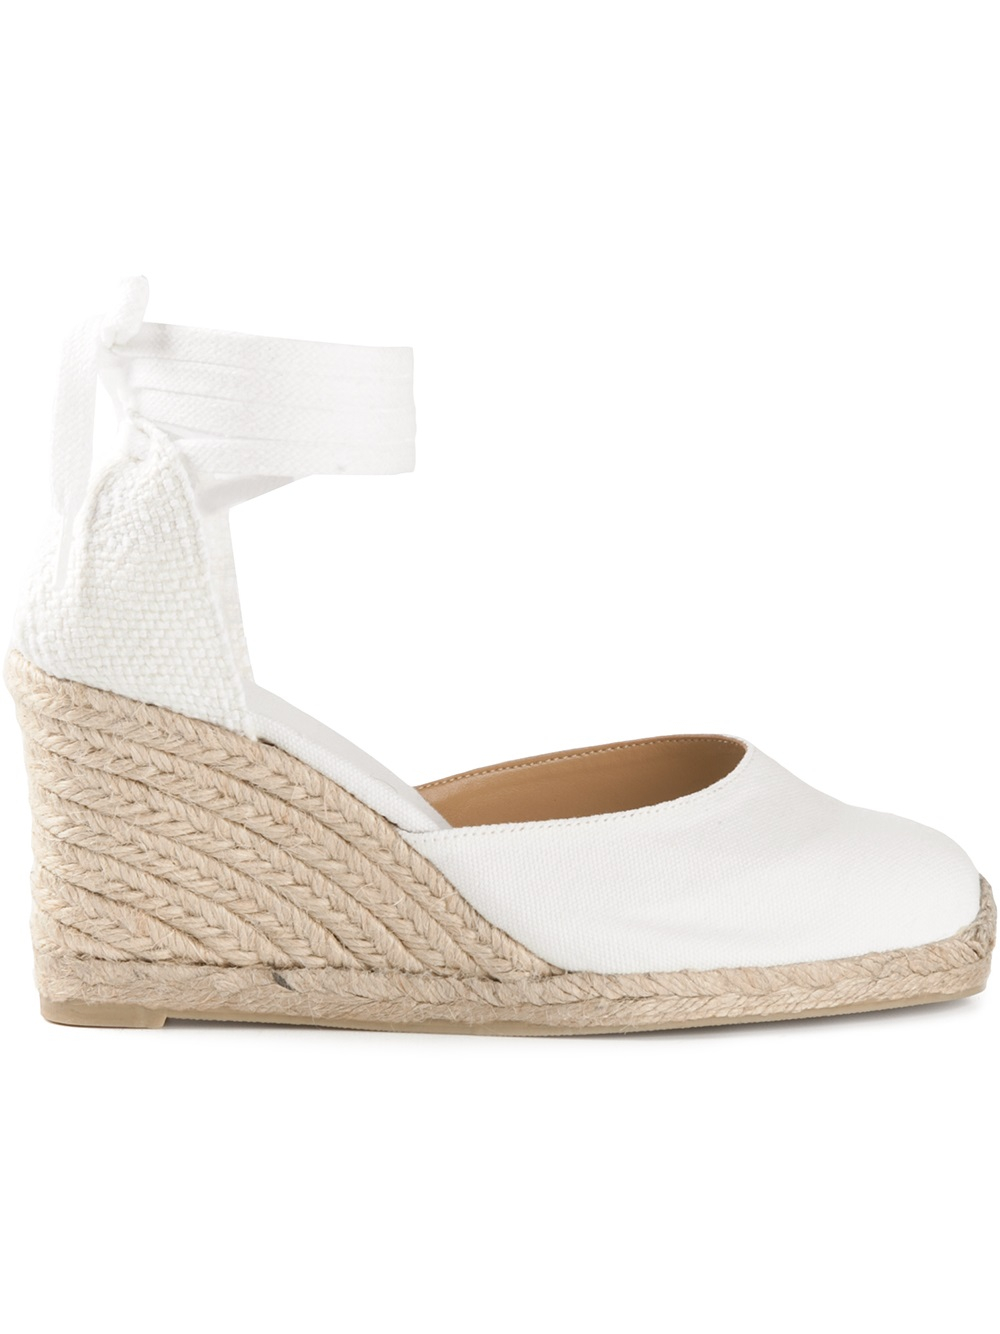 White Ankle Shoes From Nordstrom